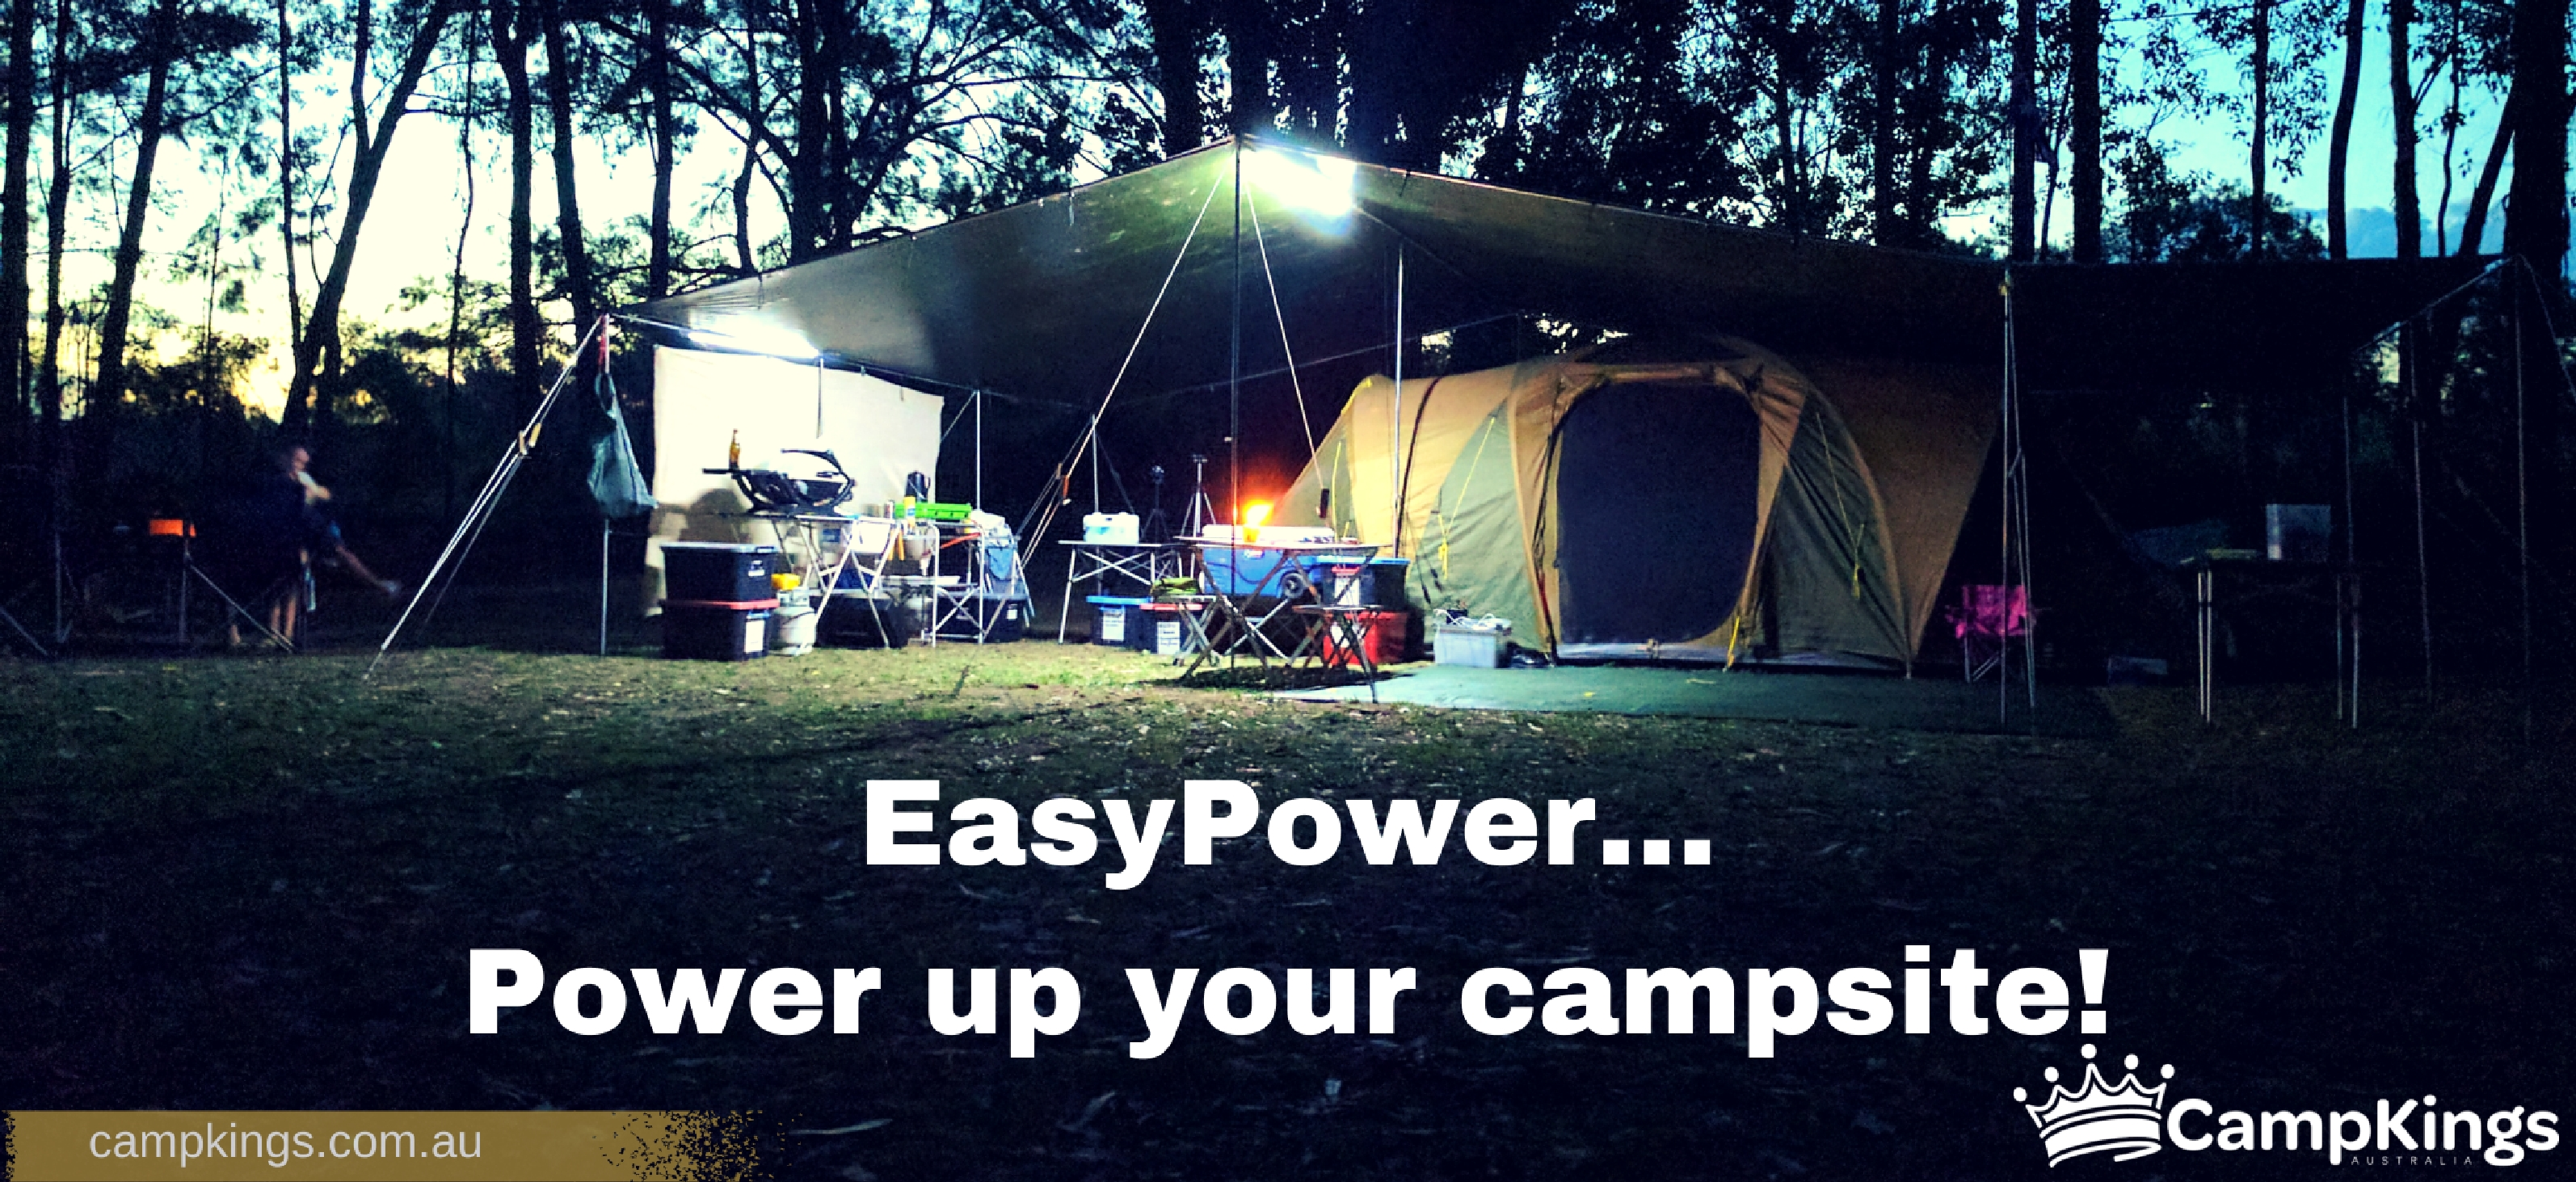 Easy Power your campsite